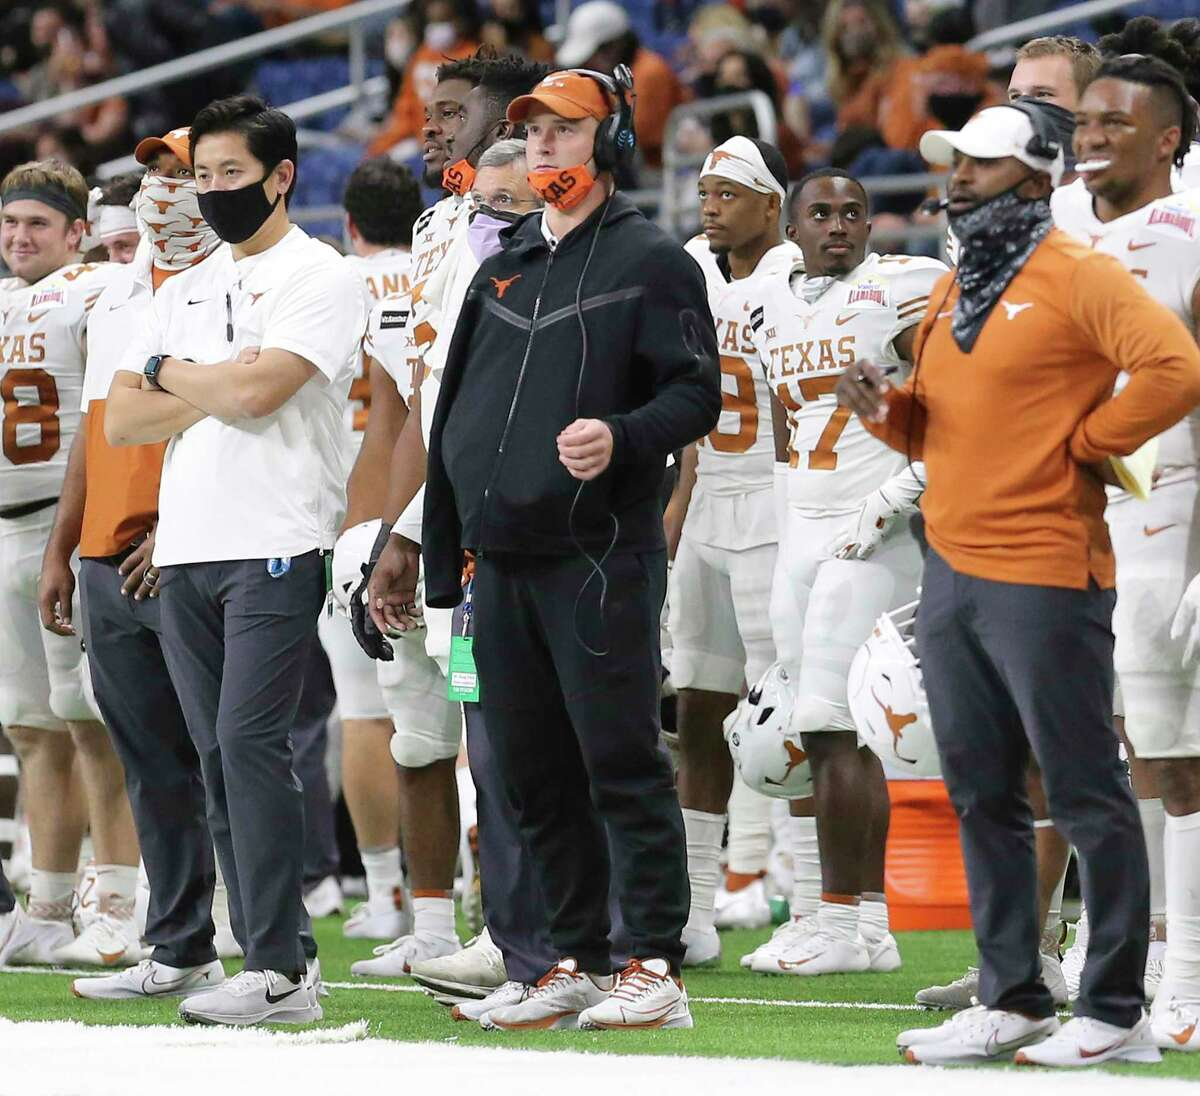 Texas quarterback Sam Ehlinger (center) watches his teammates play against Colorado in the fourth quarter during the 2020 Valero Alamo Bowl at the Alamodome on Tuesday, Dec. 29, 2020.